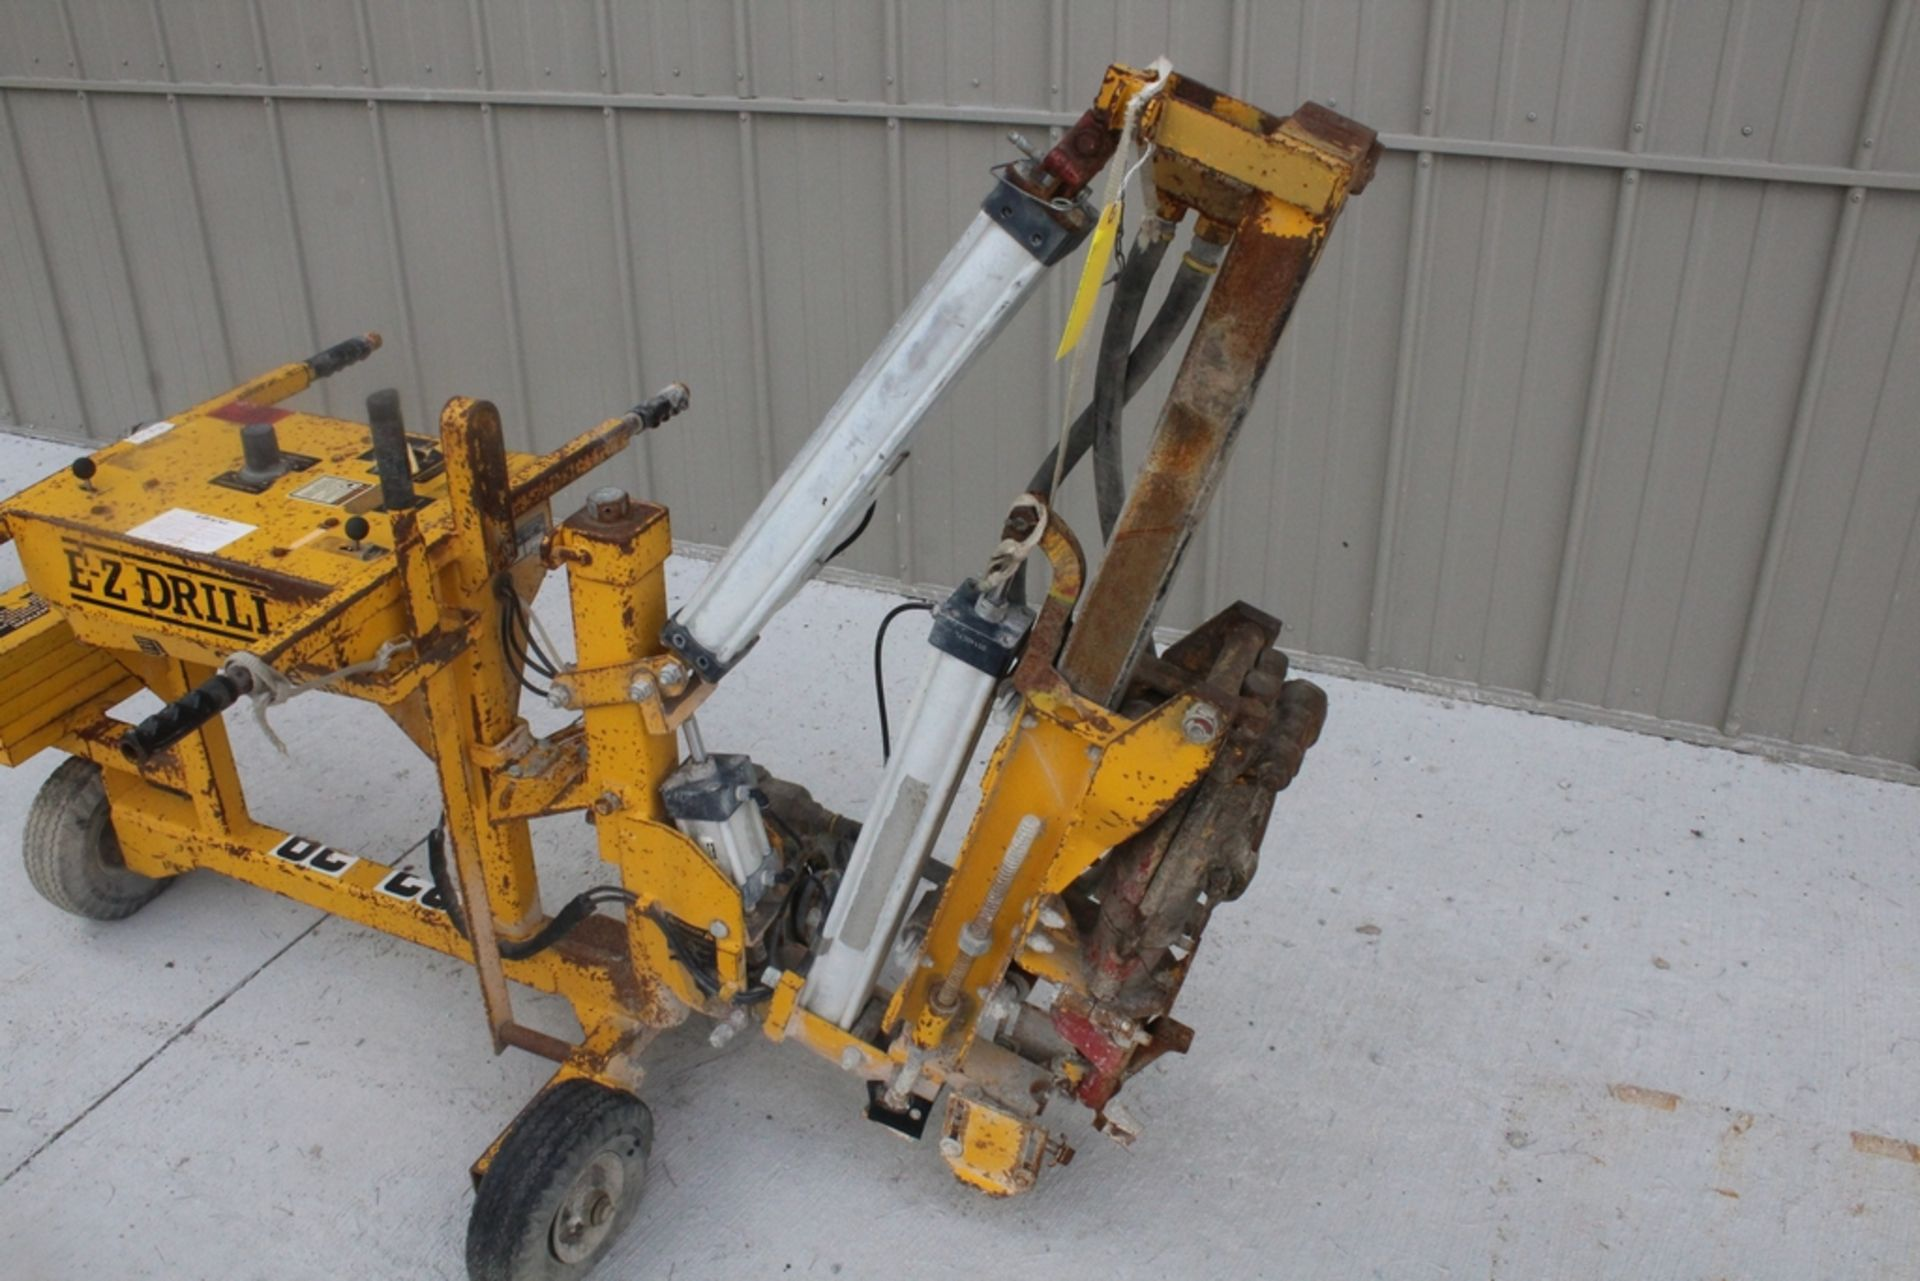 EZ-DRILL HORIZONTAL REBAR DRILL MODEL 210B, S/N 2075, WITH CORE DRILL ATTACHMENT - Image 3 of 5